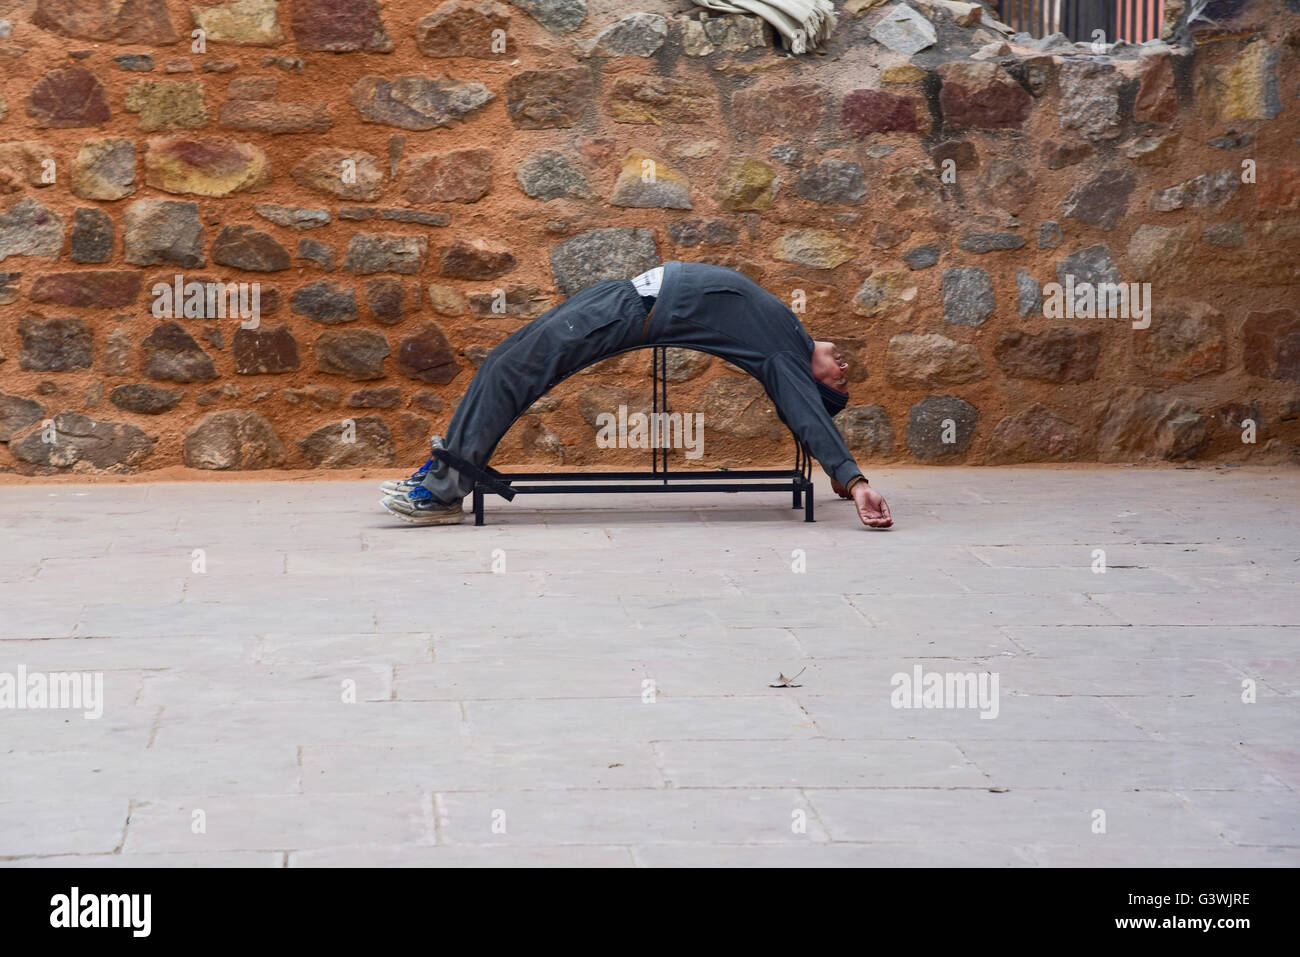 A man doing excercise early morning in the park at Quli Khan'sTomb in New Delhi, India - Stock Image